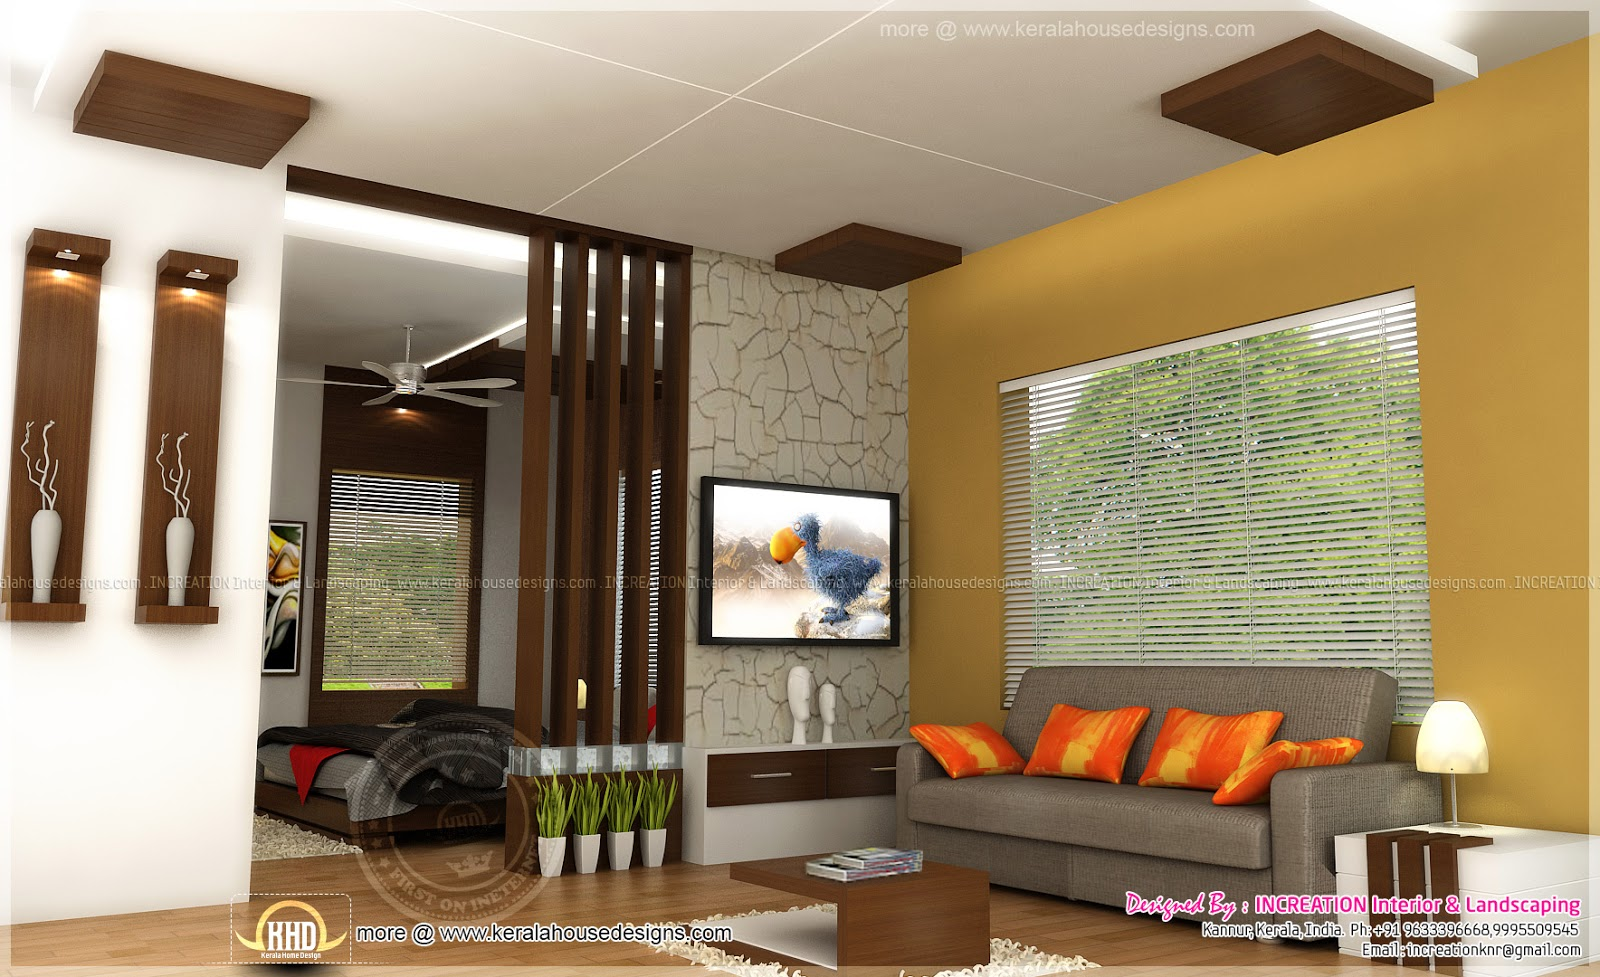 Interior designs from kannur kerala kerala home design for Interior design ideas for small homes in kerala